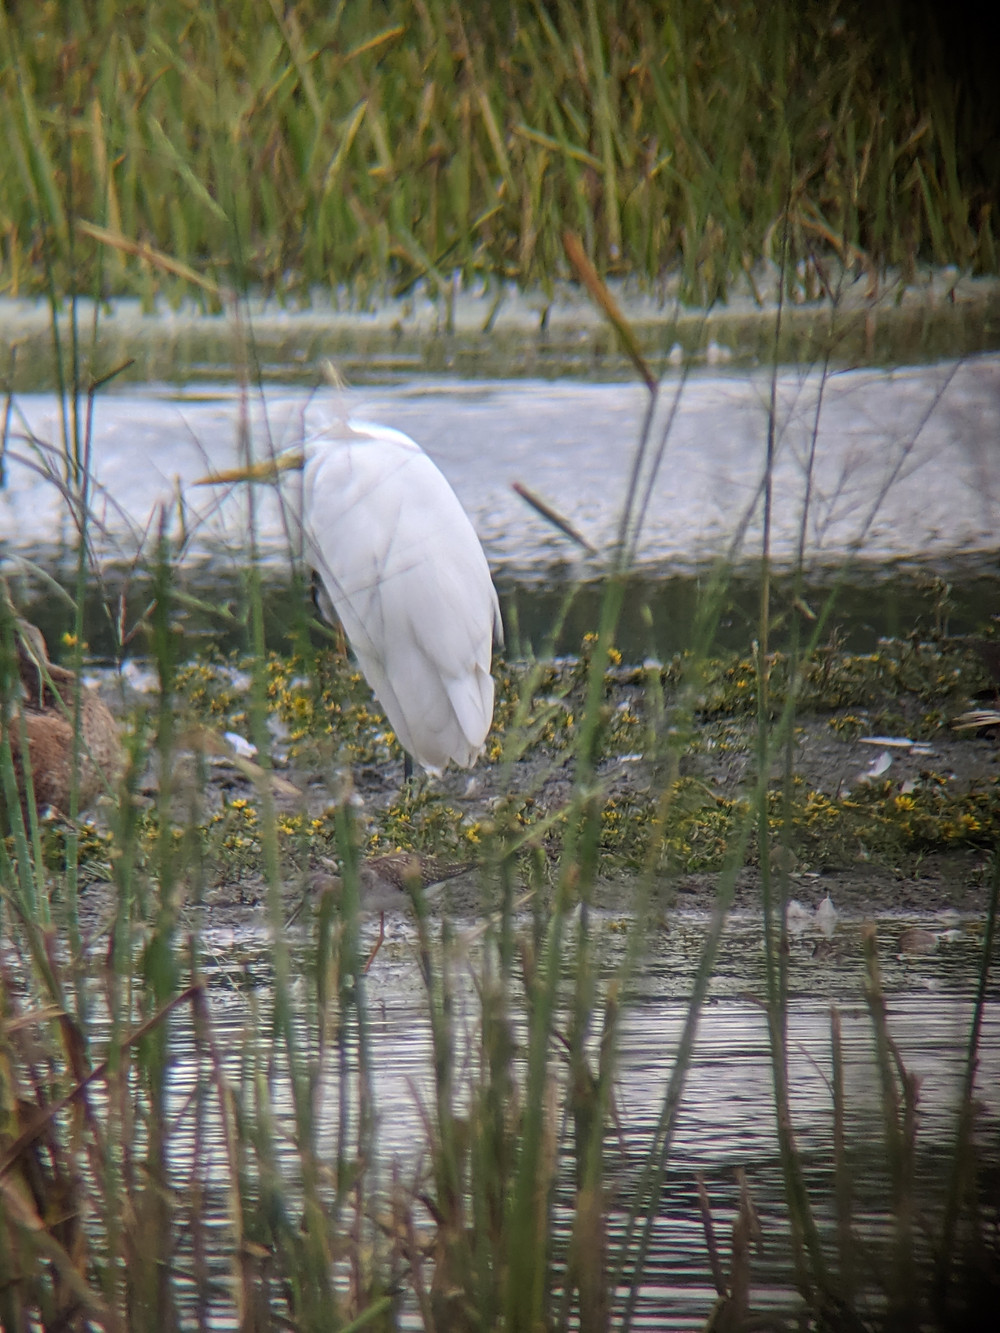 View of a Great Egret with a very obscured Lesser Yellowlegs in the foreground